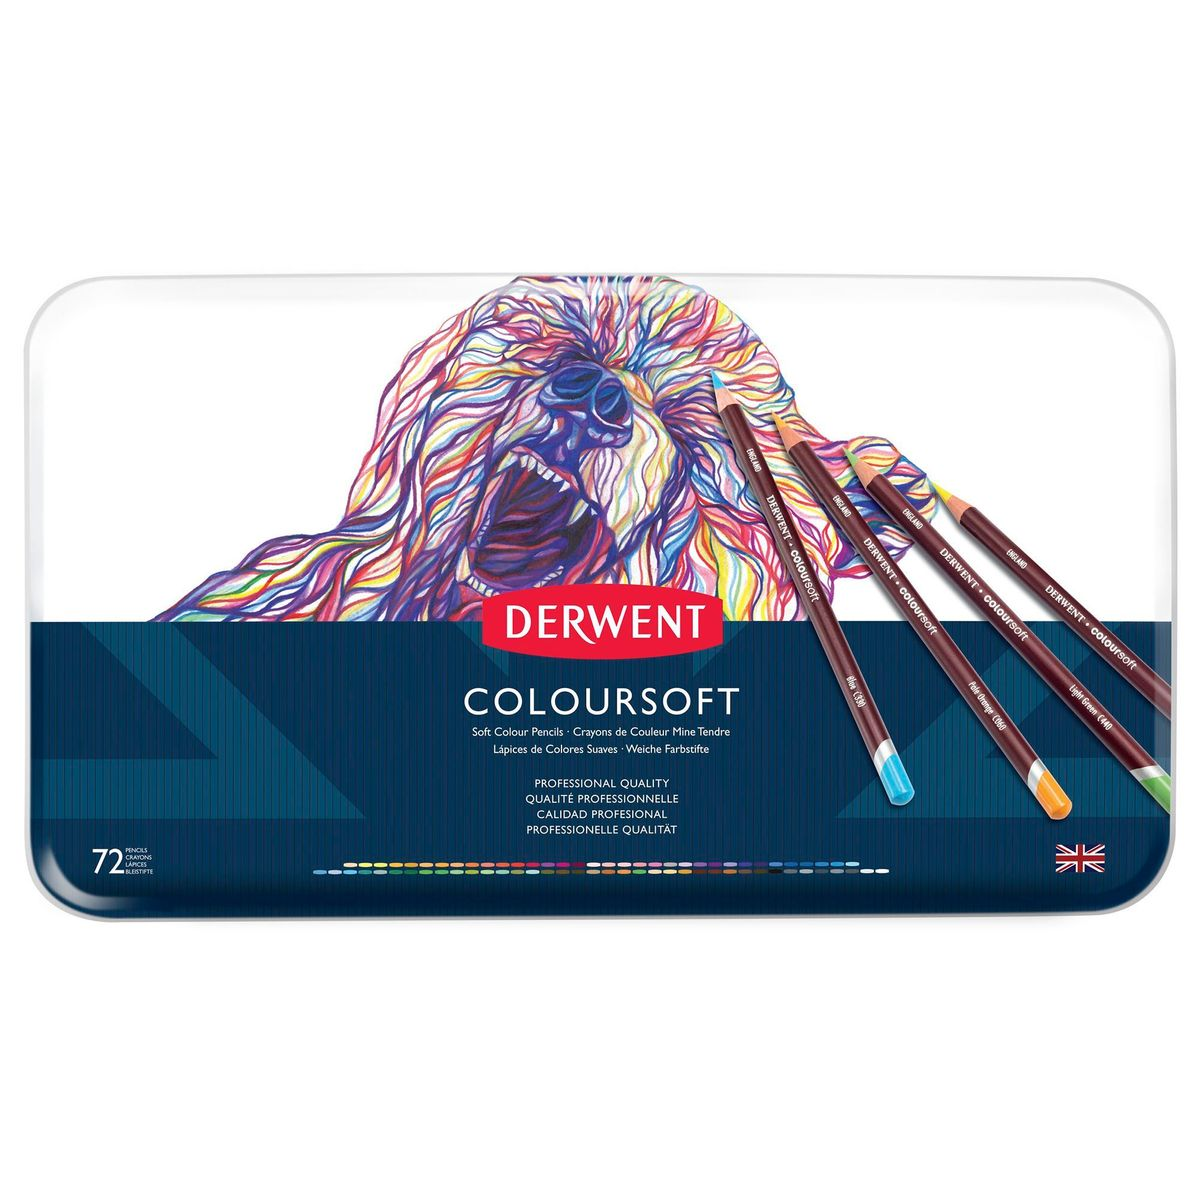 KIT COLOURSOFT C/ 72 CORES